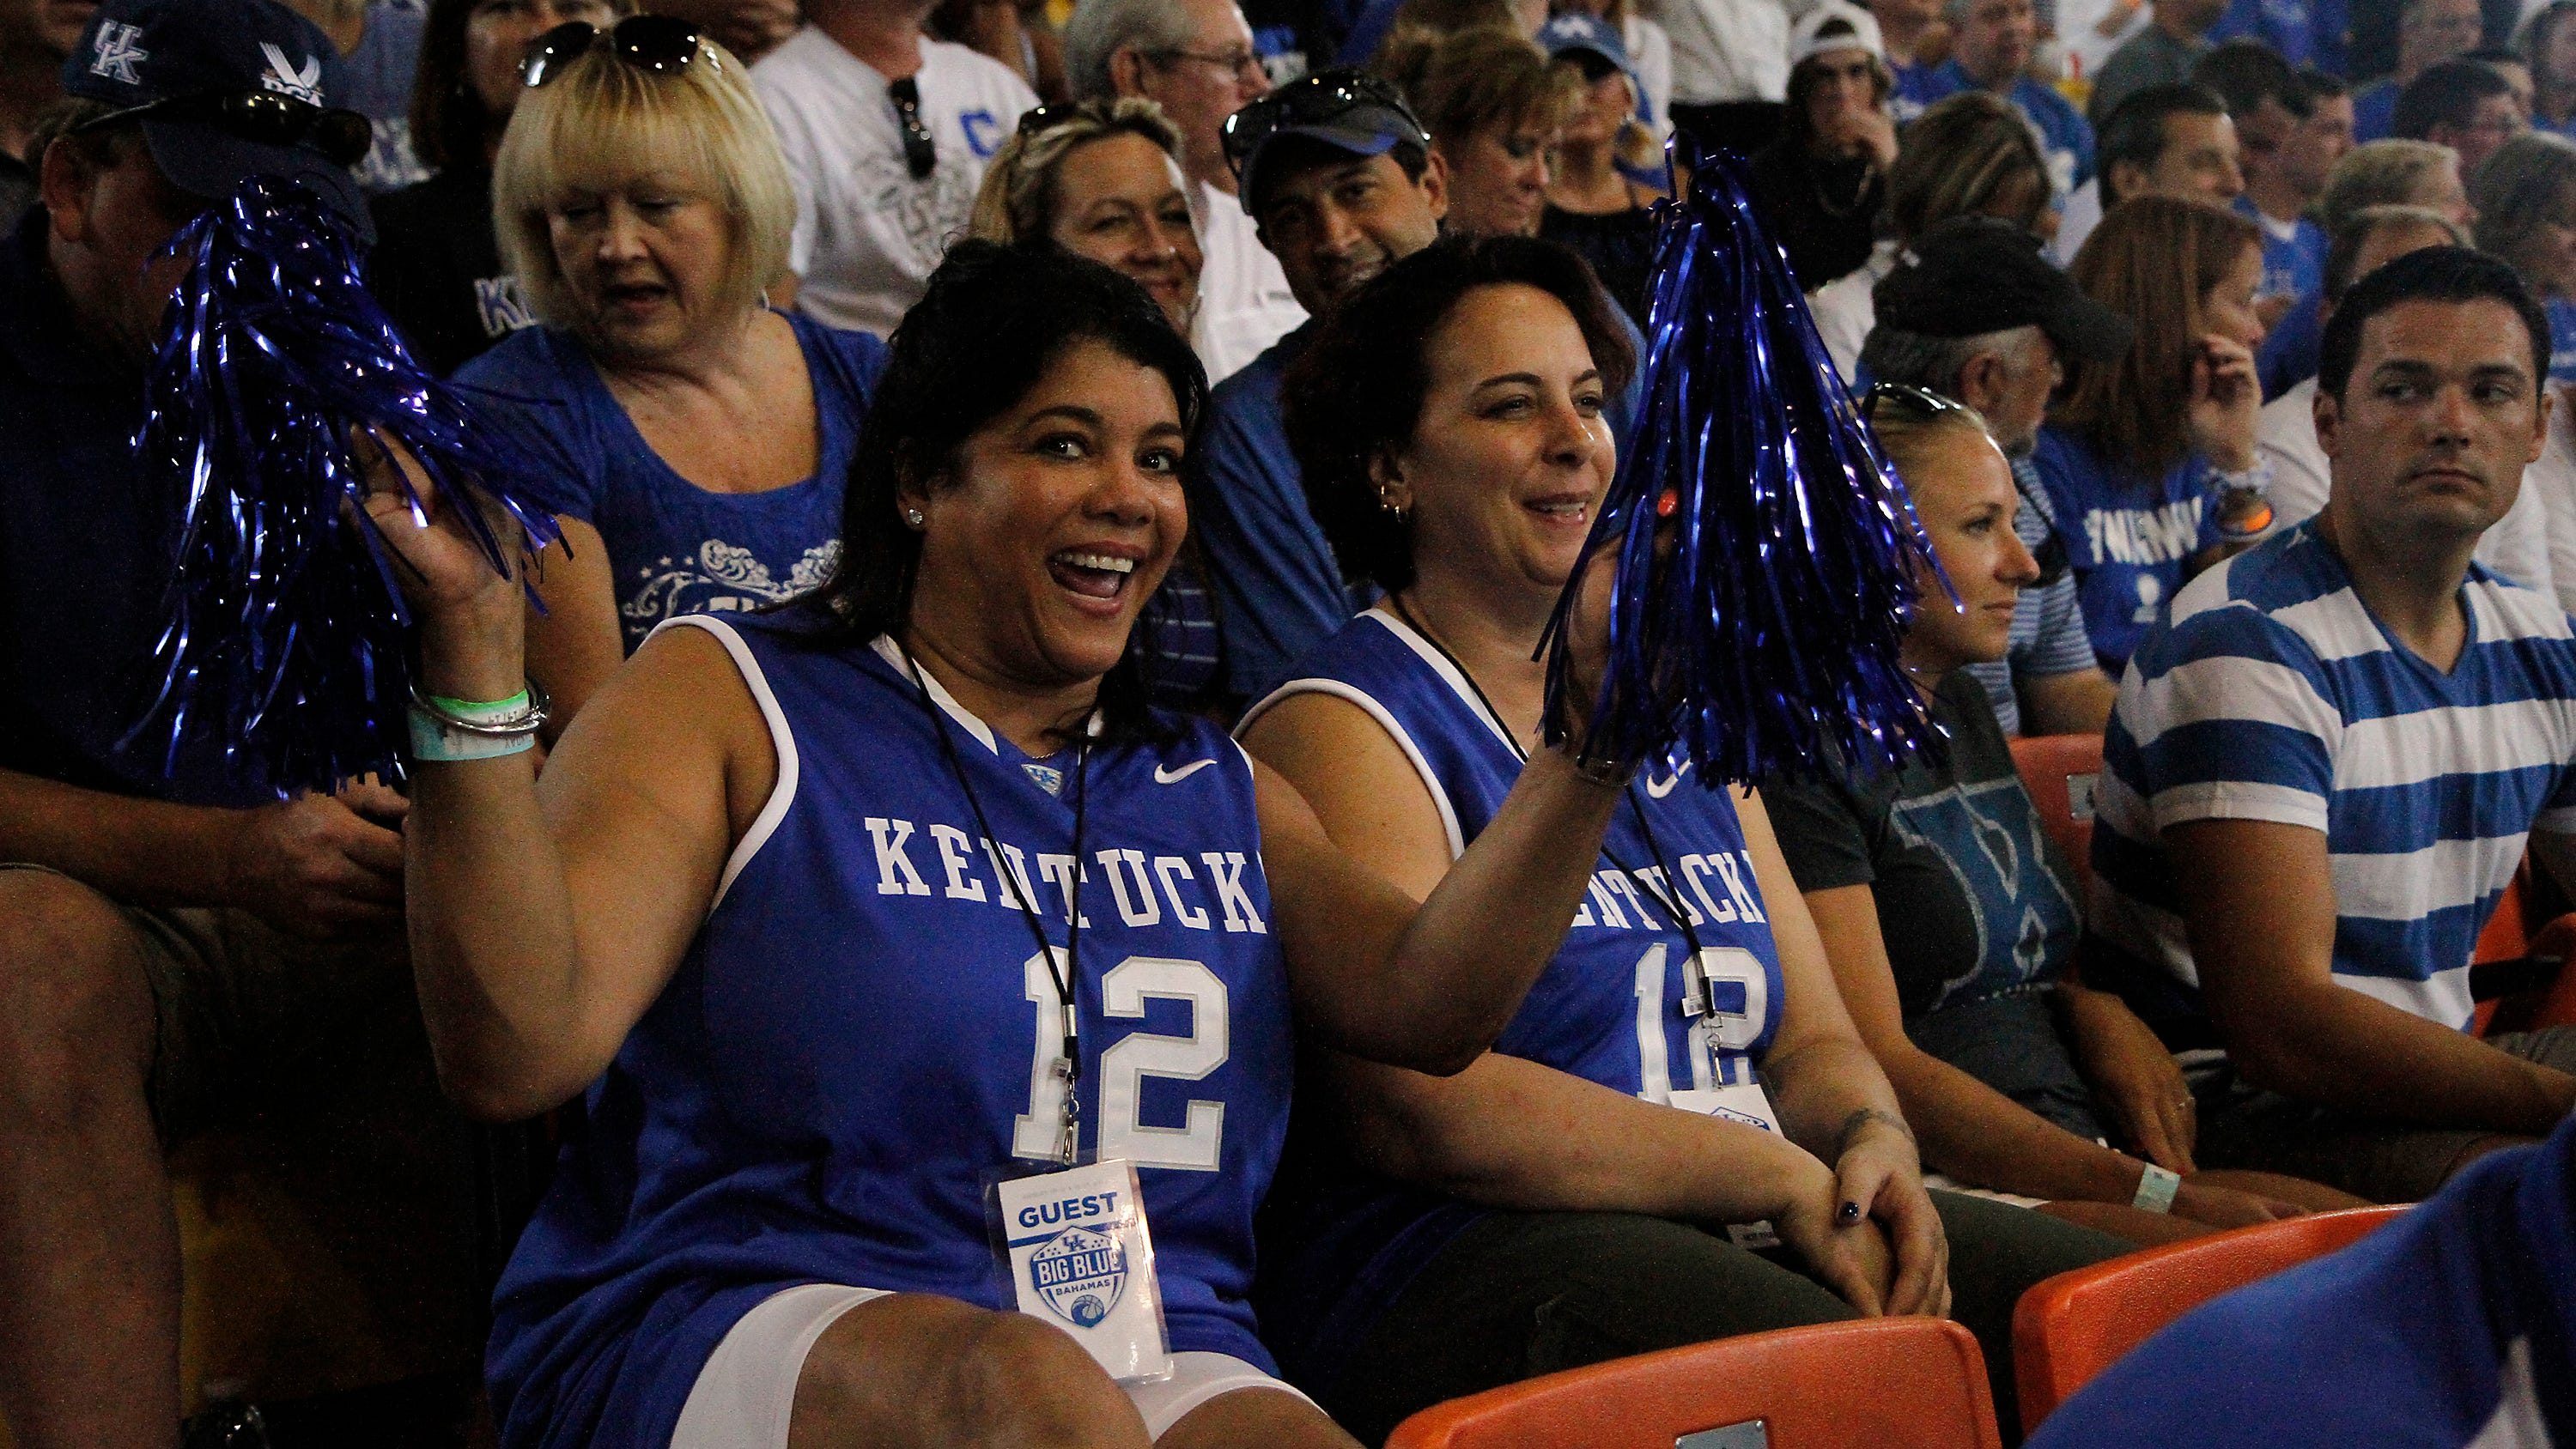 Towns Parents Separable If Only For Uk Games